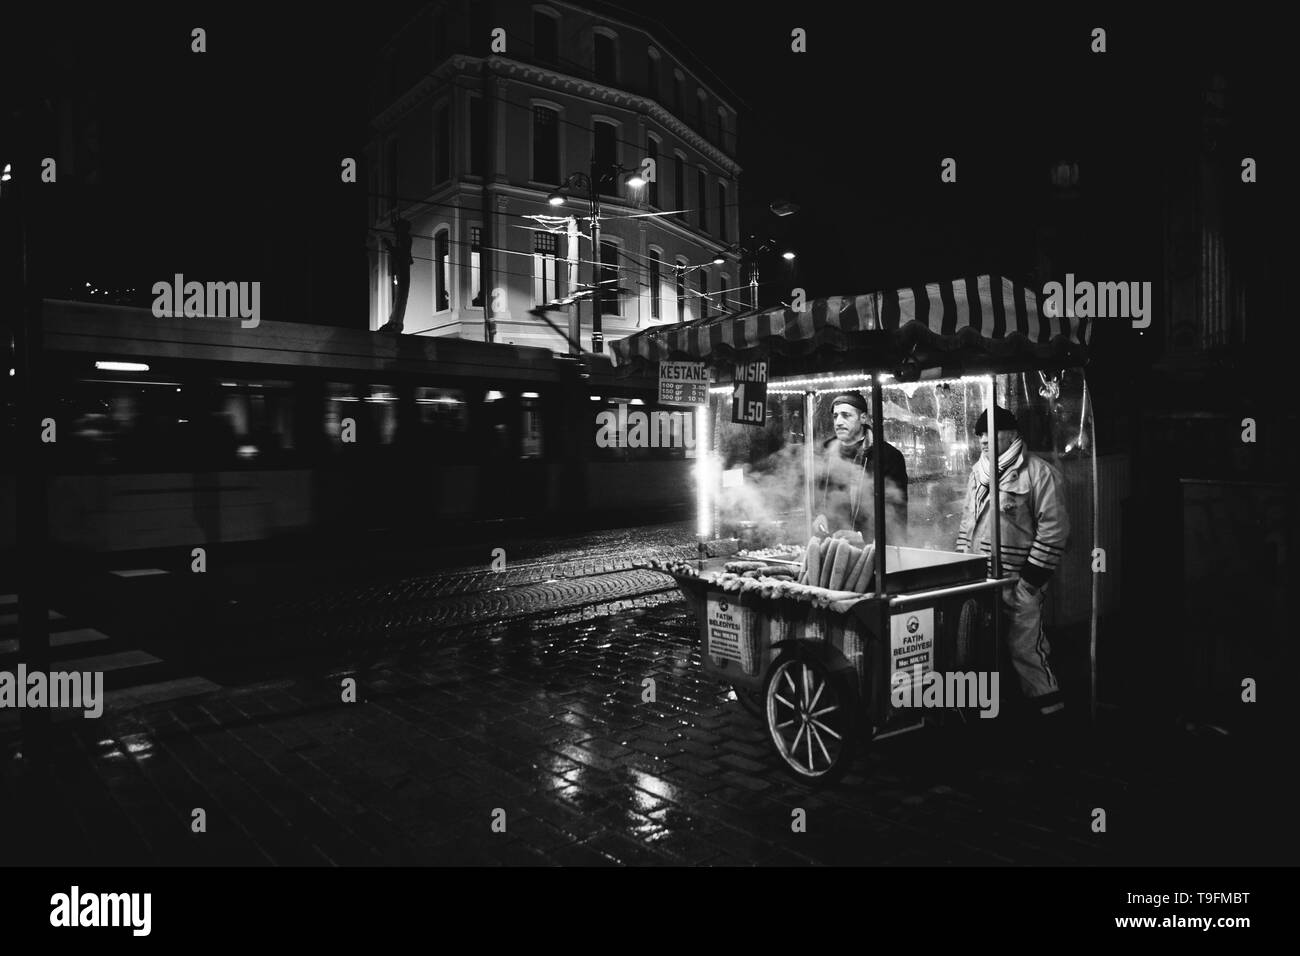 Istanbul, Turkey - April 11, 2012: Street vendor hot food, black and white night photography. - Stock Image